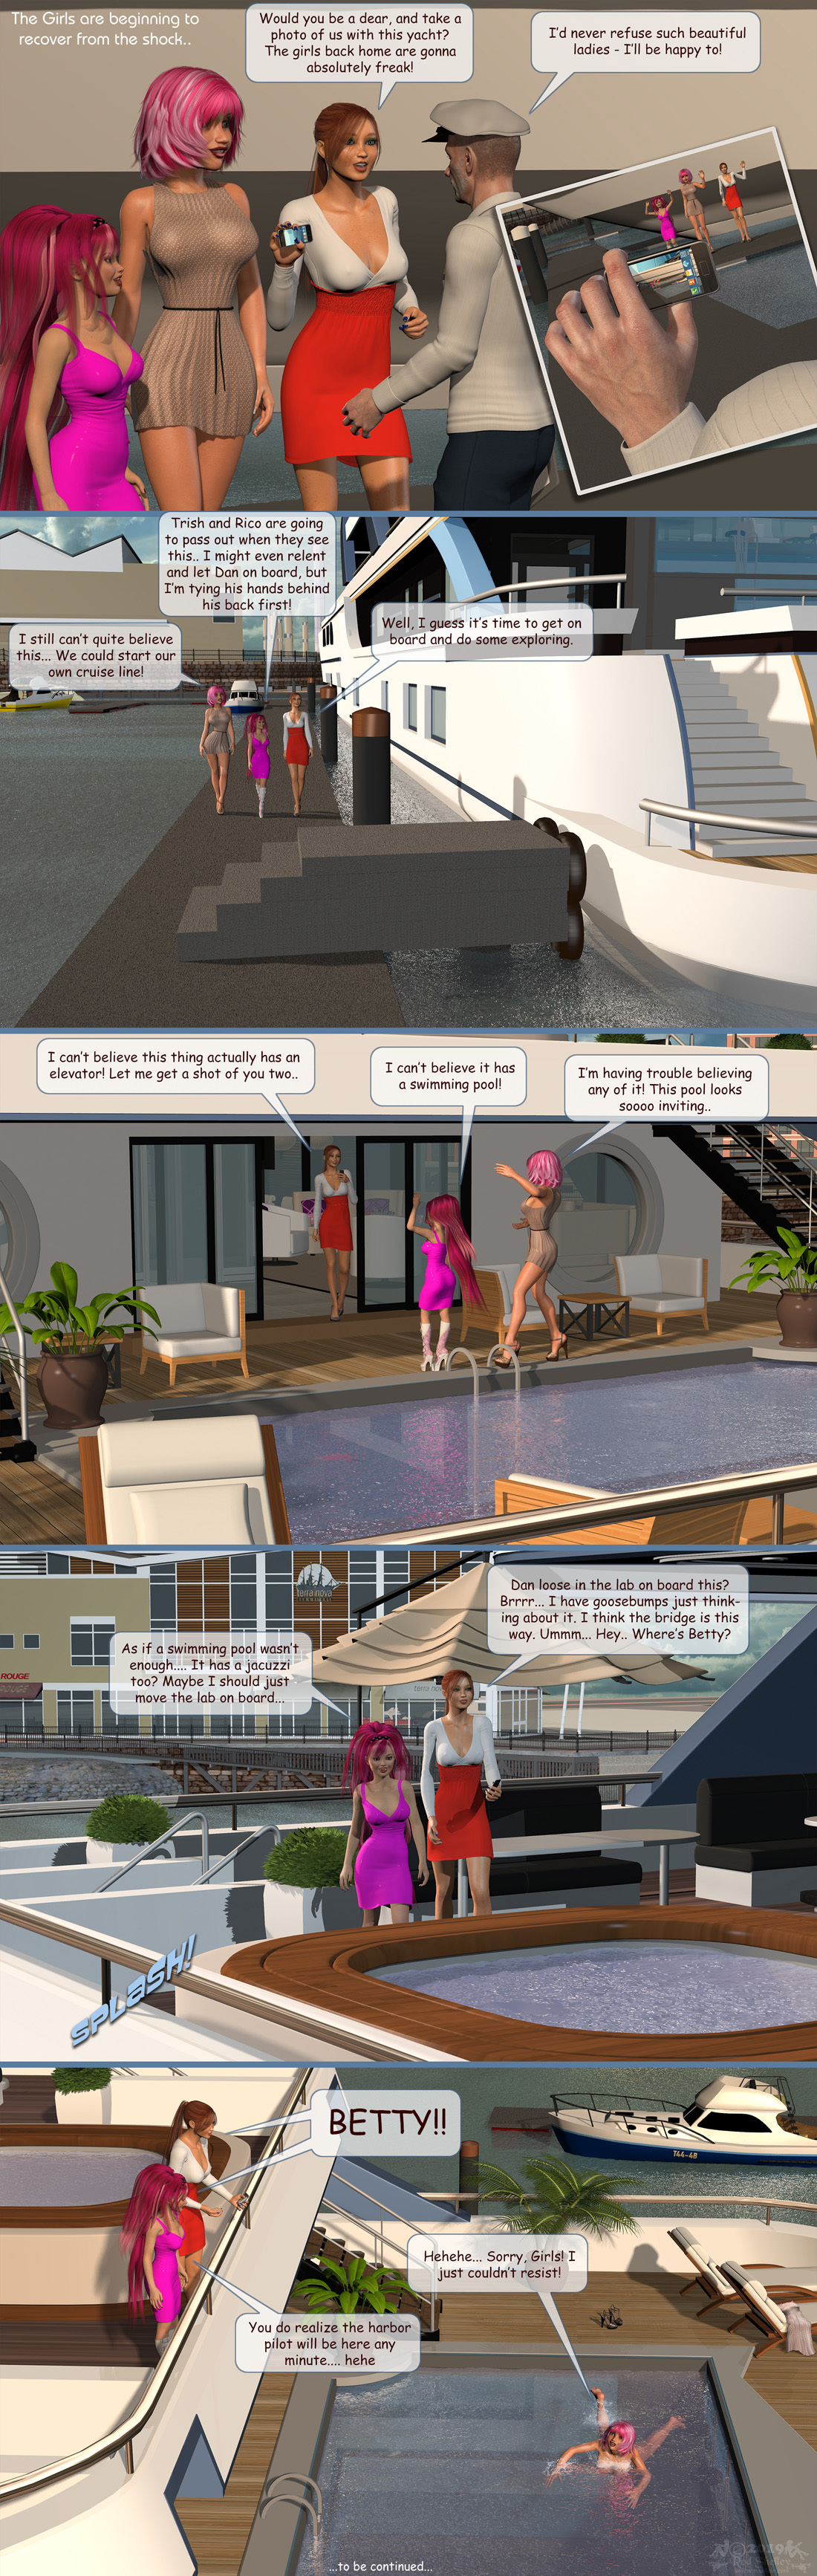 Girls From T.N.A: Breitlenger Jar: Ch 6 Page 35